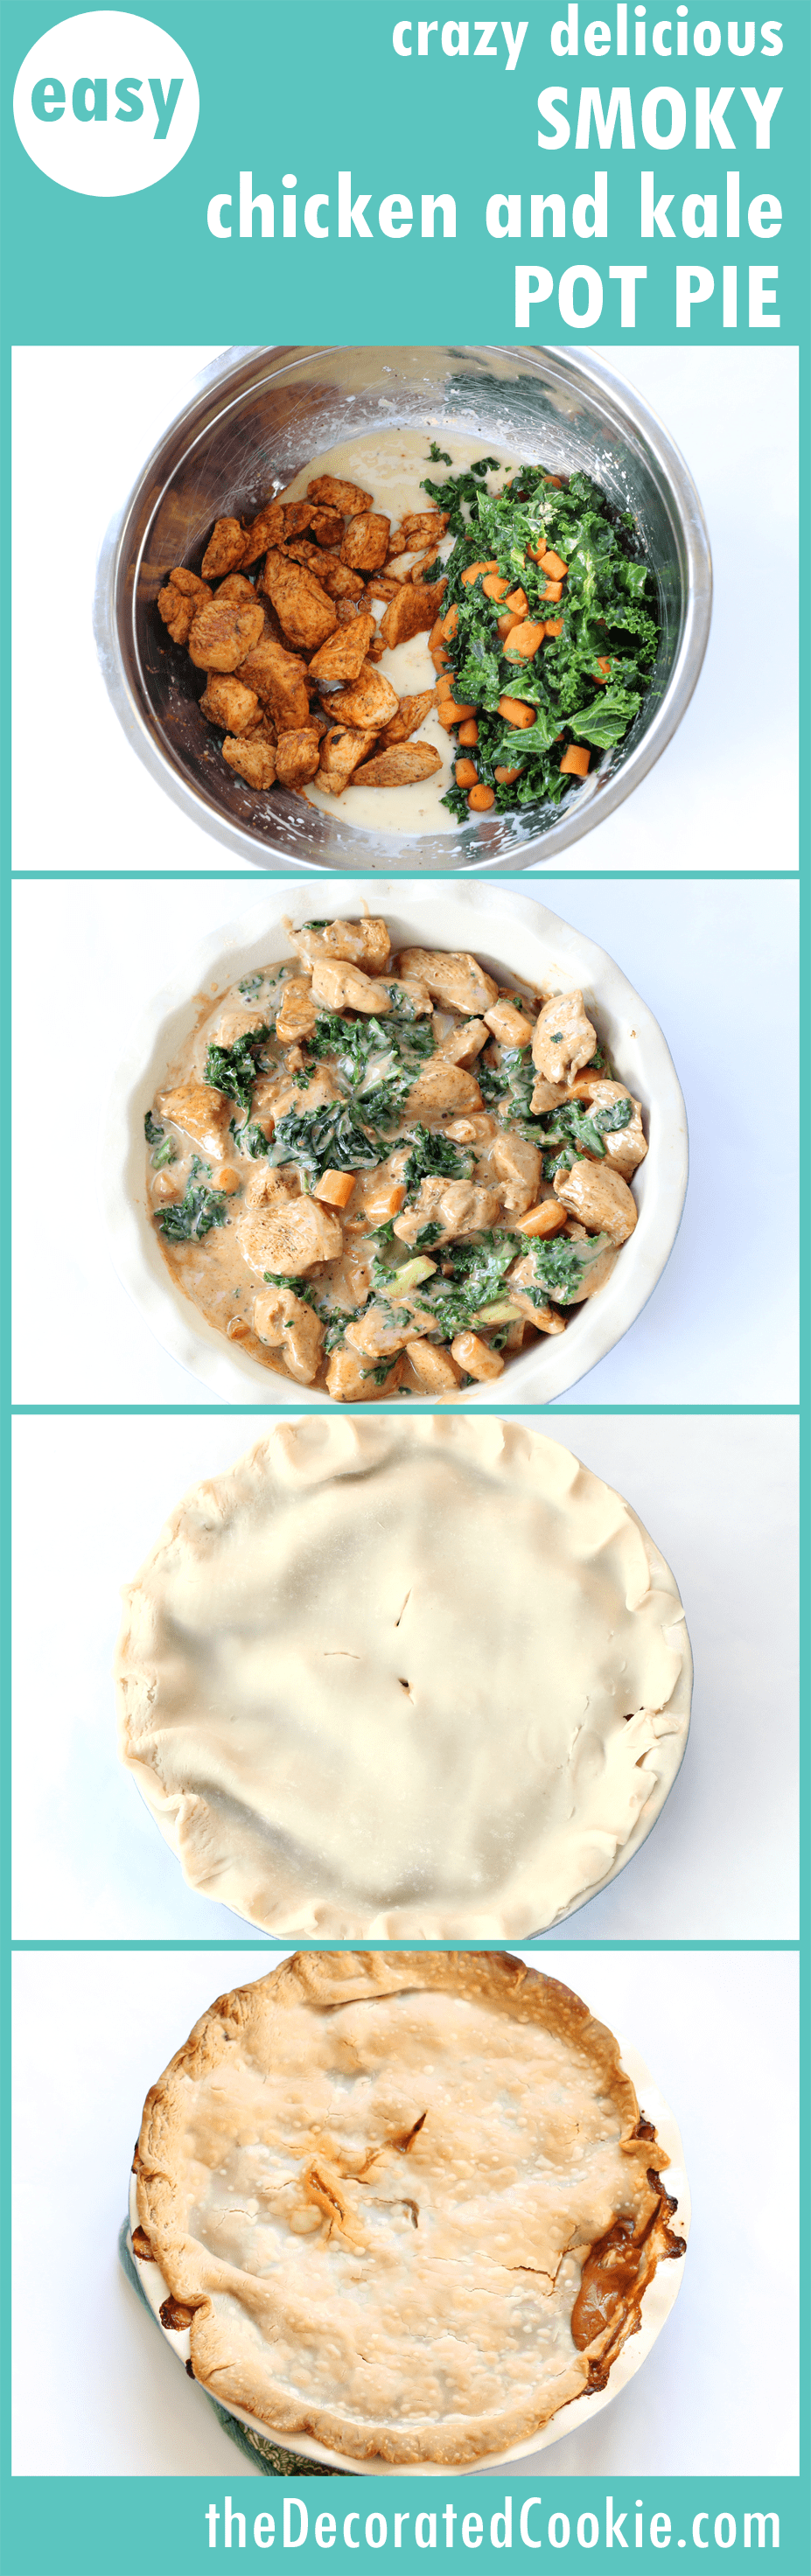 spicy smoky chipotle chicken and kale pot pie